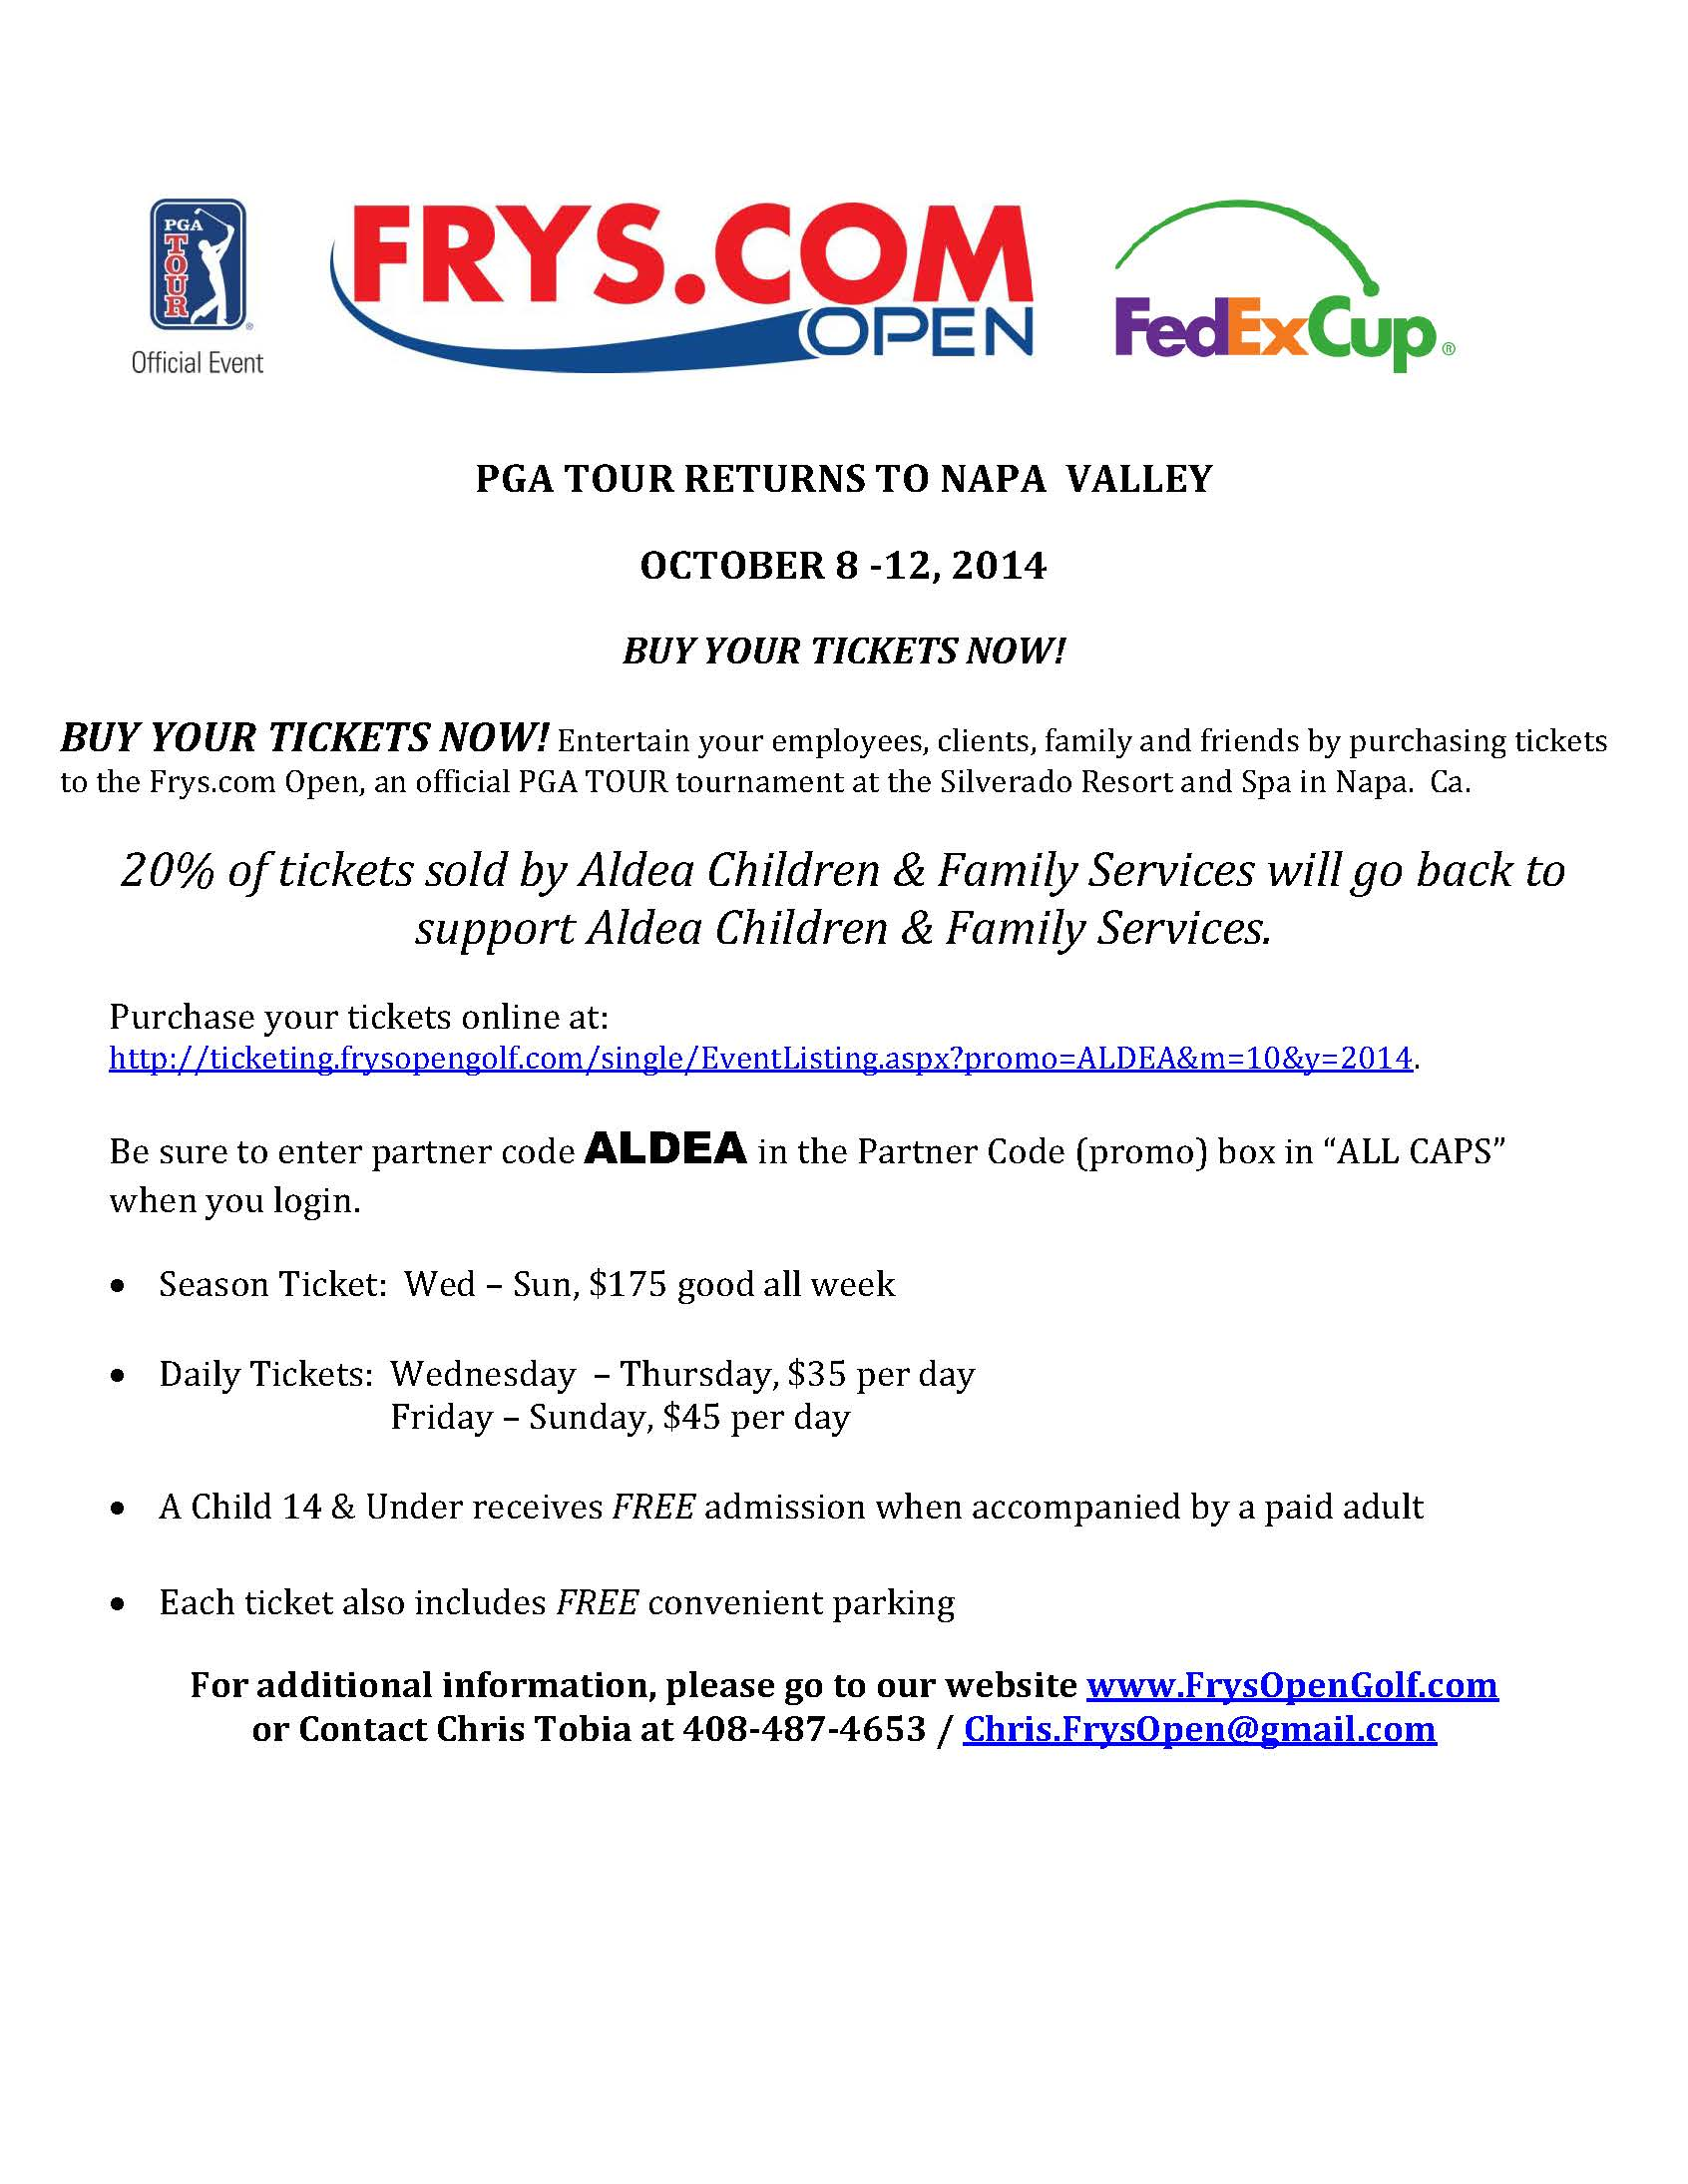 You can support Aldea while attending the Frys... - Aldea Children ...